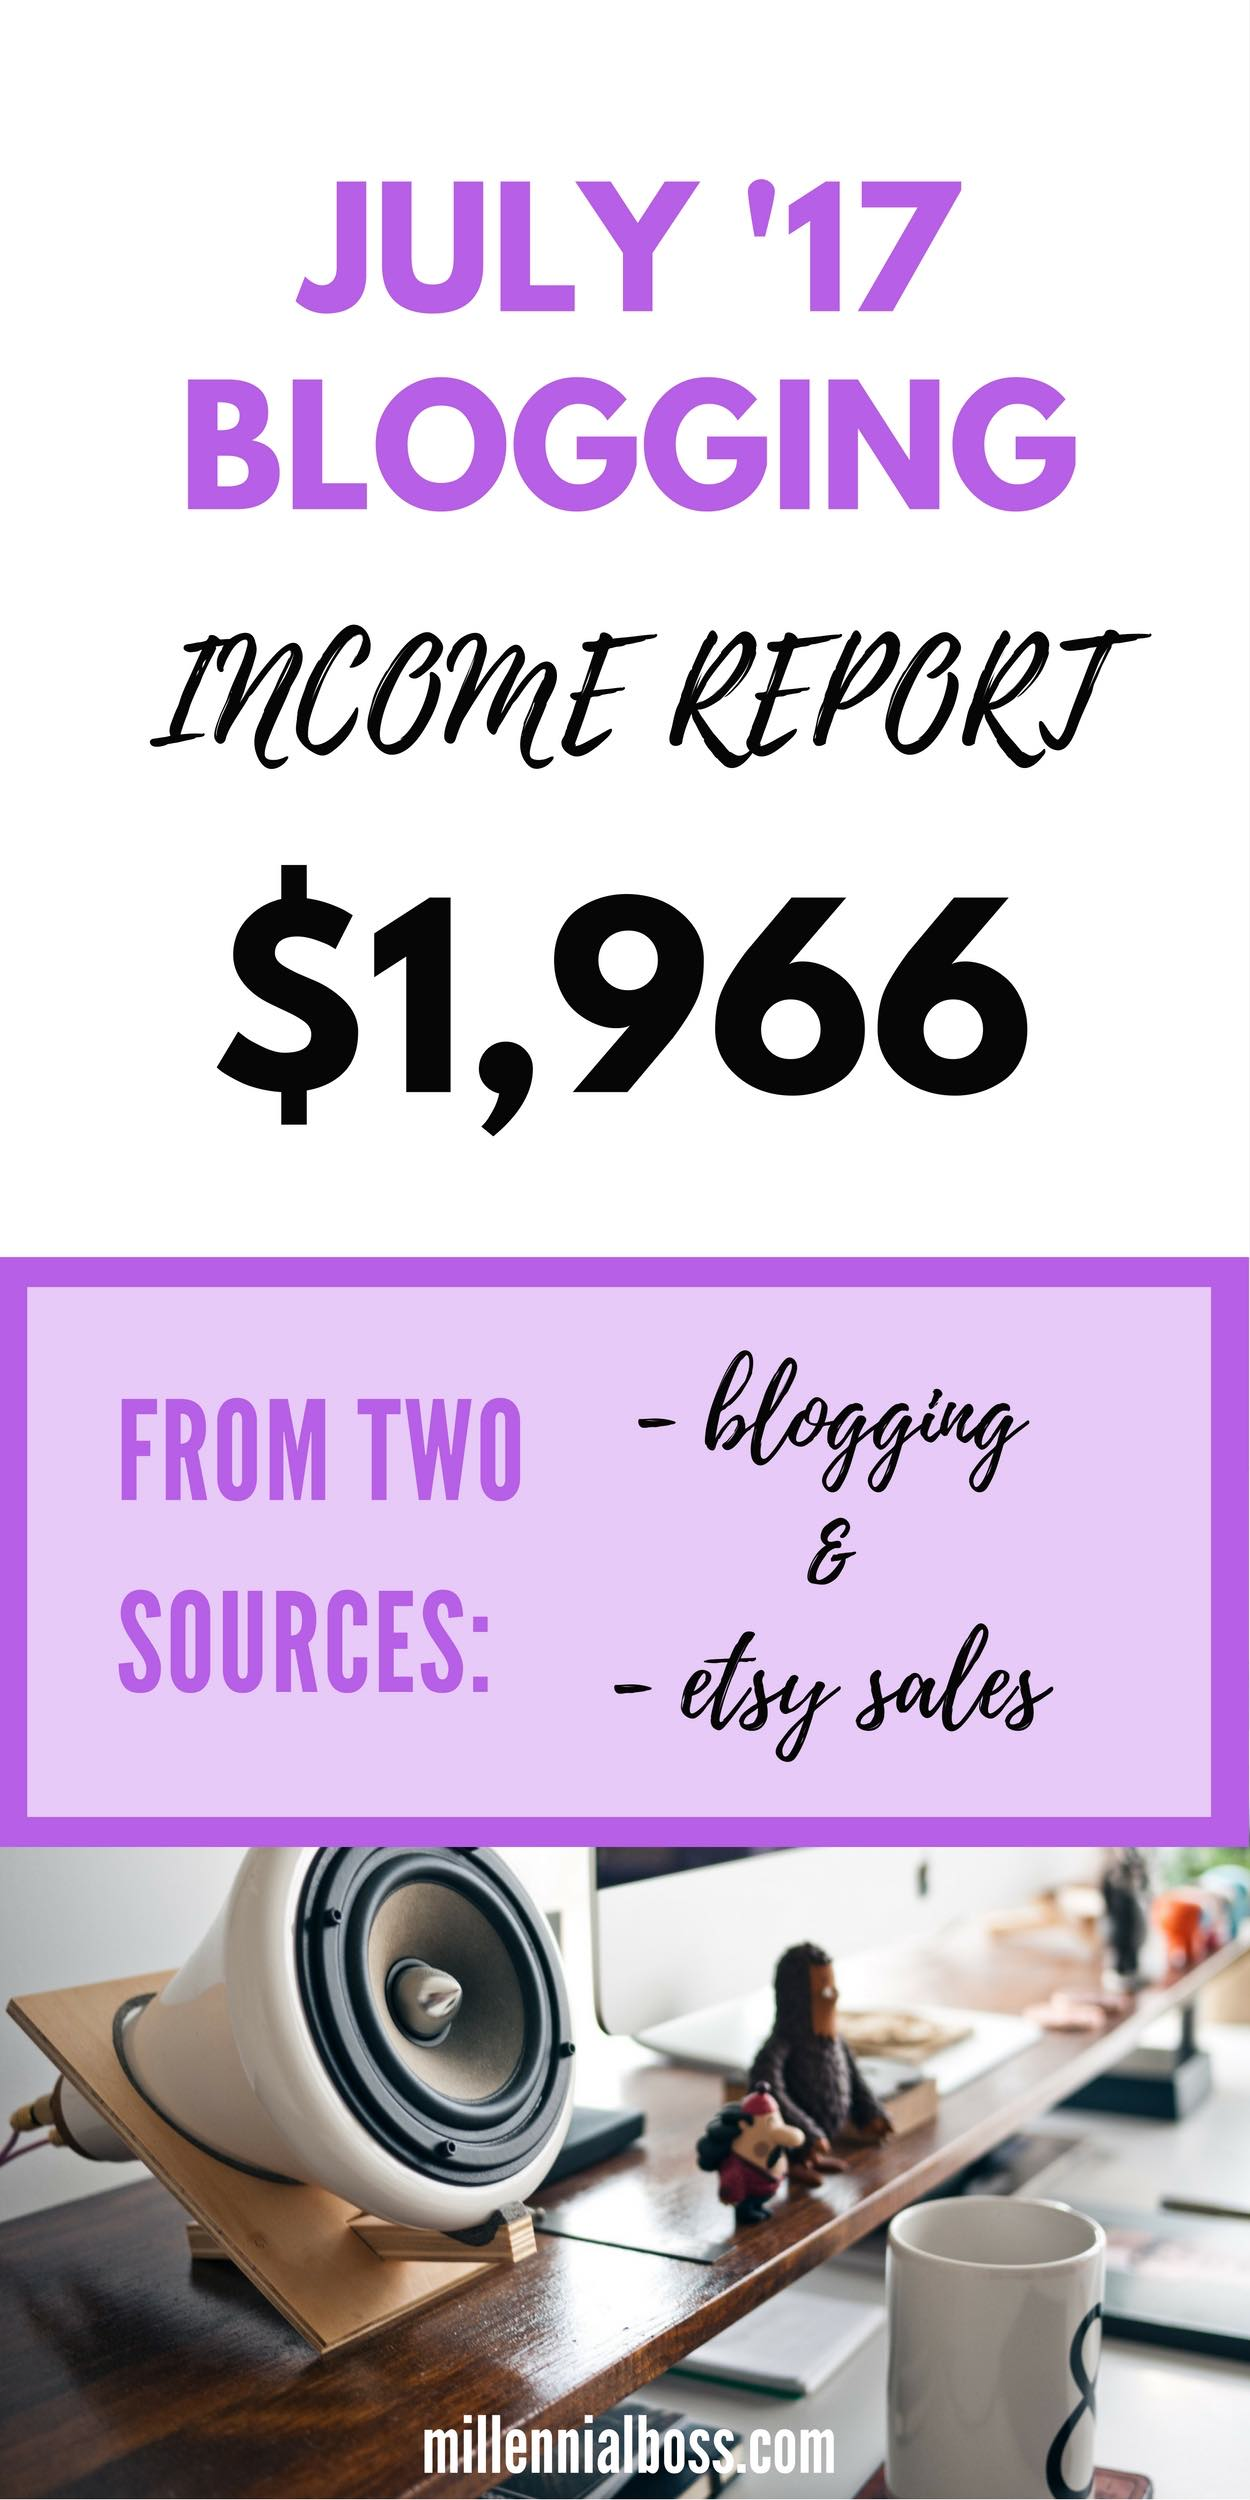 Millennial Boss Blogging Income Report July 2017. I'm sharing my progress and great tips to make income with your blog, too!